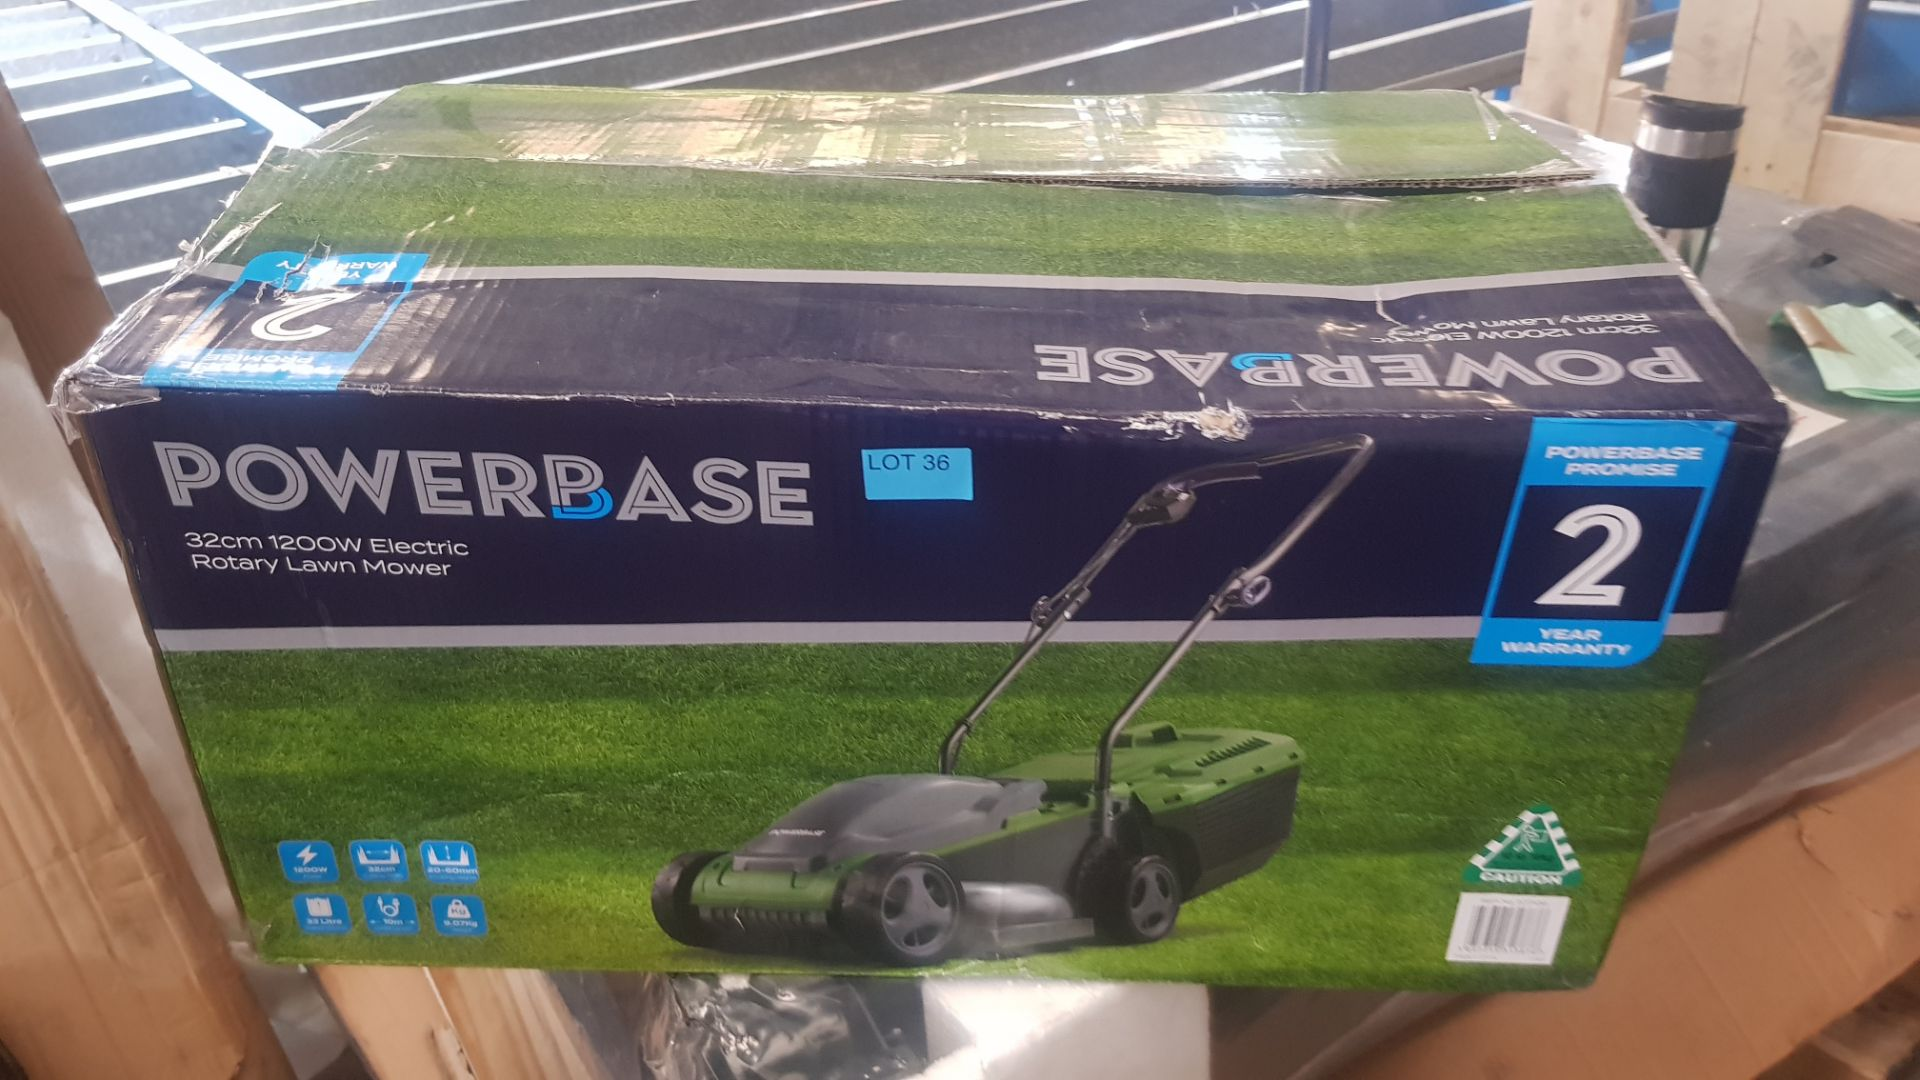 (P8) 1x Powerbase 32cm 1200W Electric Rotary Lawn Mower RRP £59. (Unit Appears Clean, Unused & As - Image 3 of 4